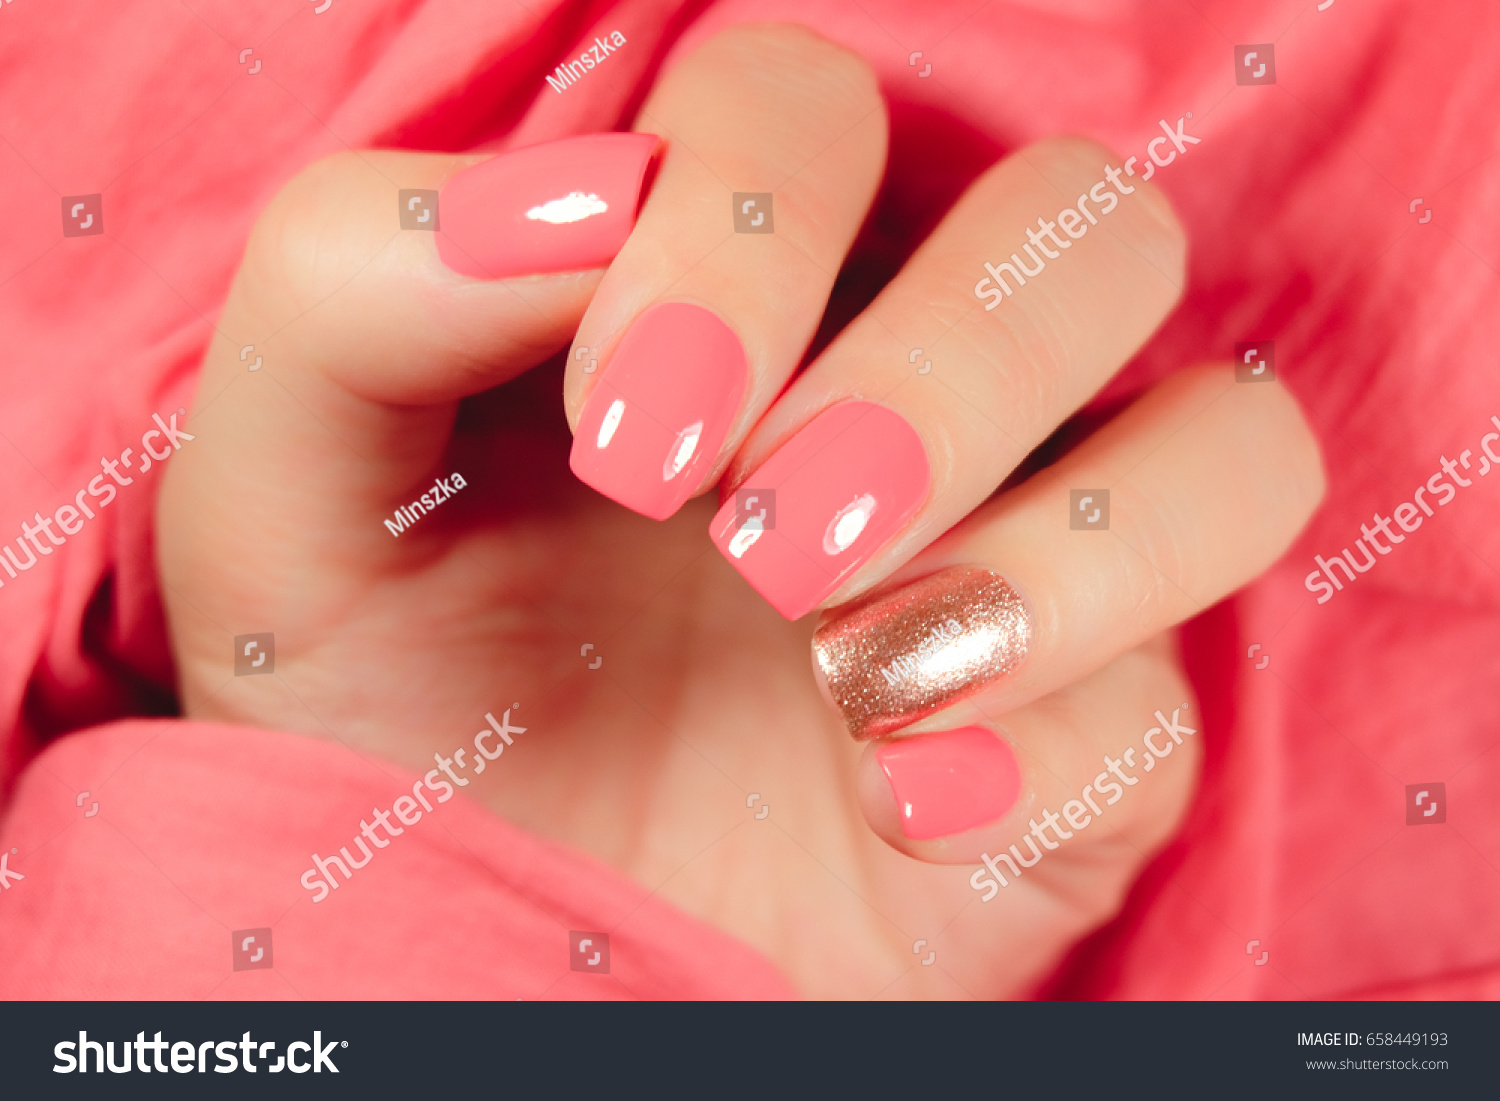 Multicolored Manicure Different Shades Pink Nail Stock Photo Edit Now 658449193